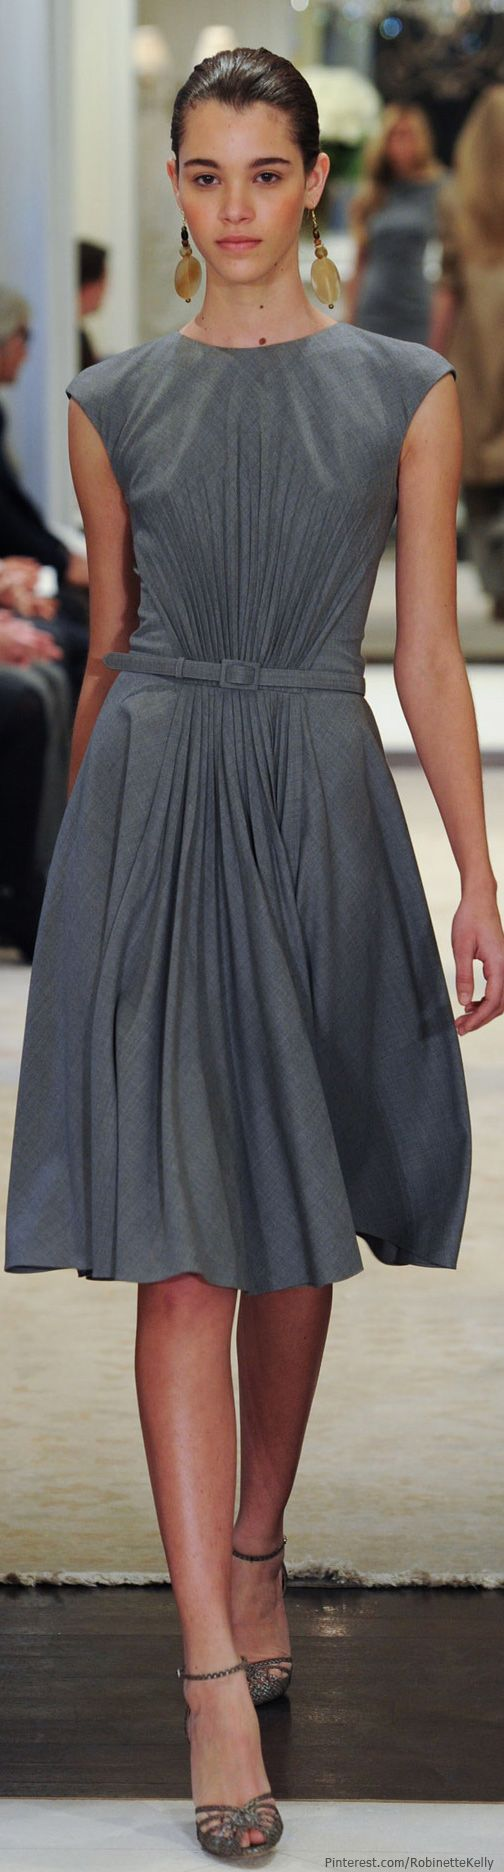 Ralph Lauren 2014. Belted gray dress with pleats all gathering at the waist. Cap sleeves.